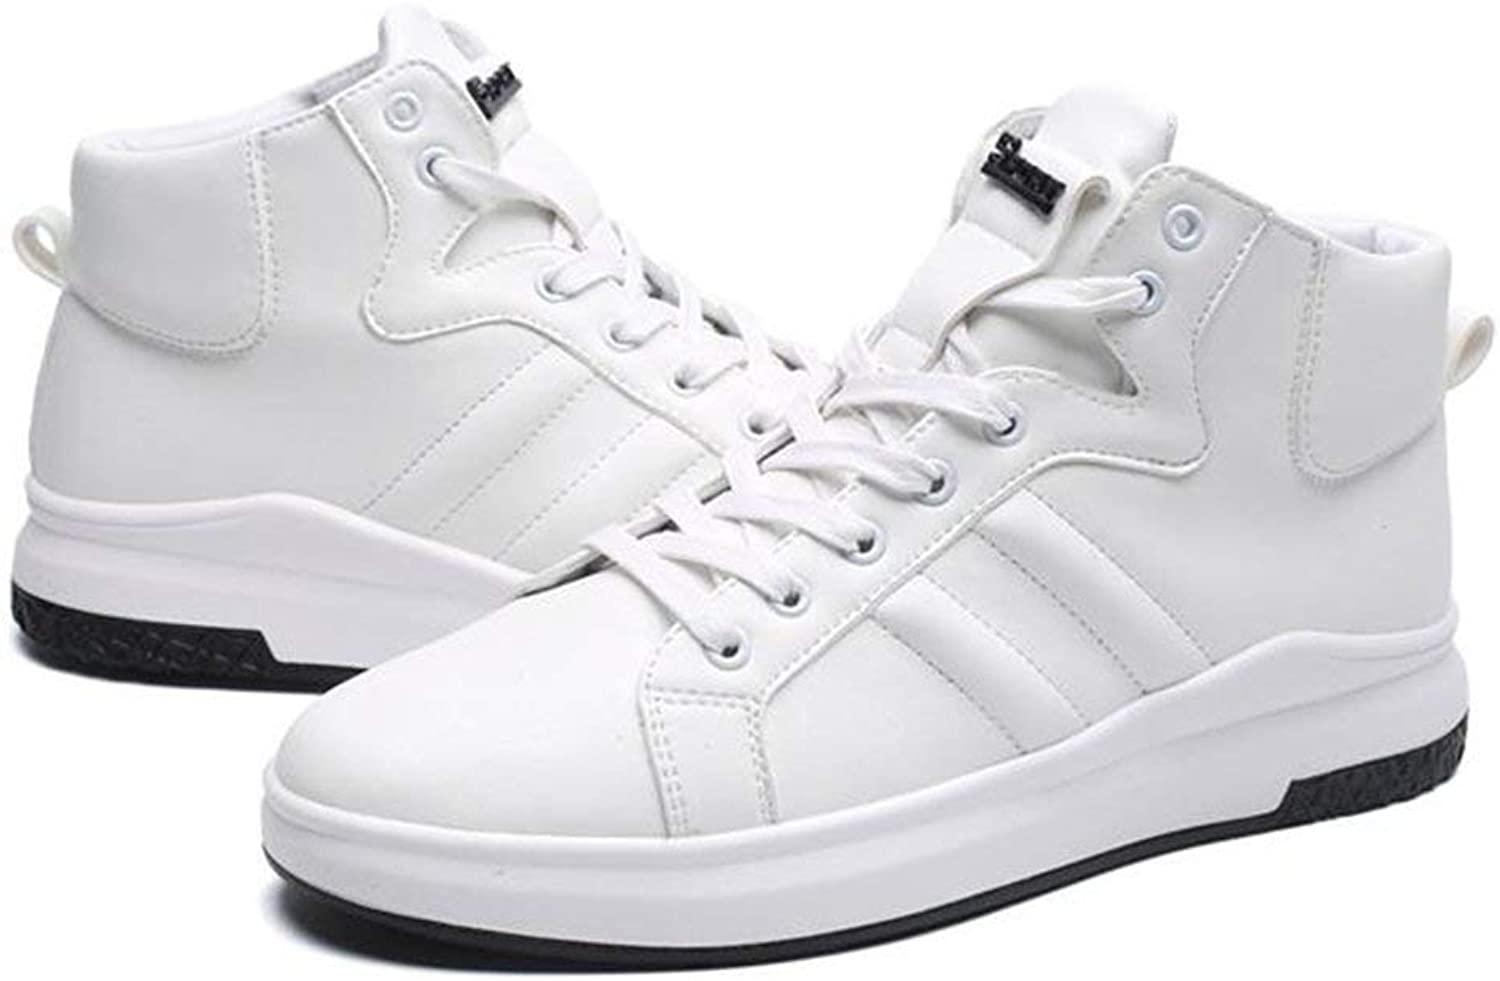 Dsx Men's shoes High-Top shoes Pu Unisex Adult Basketball shoes Running shoes Sports shoes Trainer Black White Red, white, EU39 UK6.5 CN40